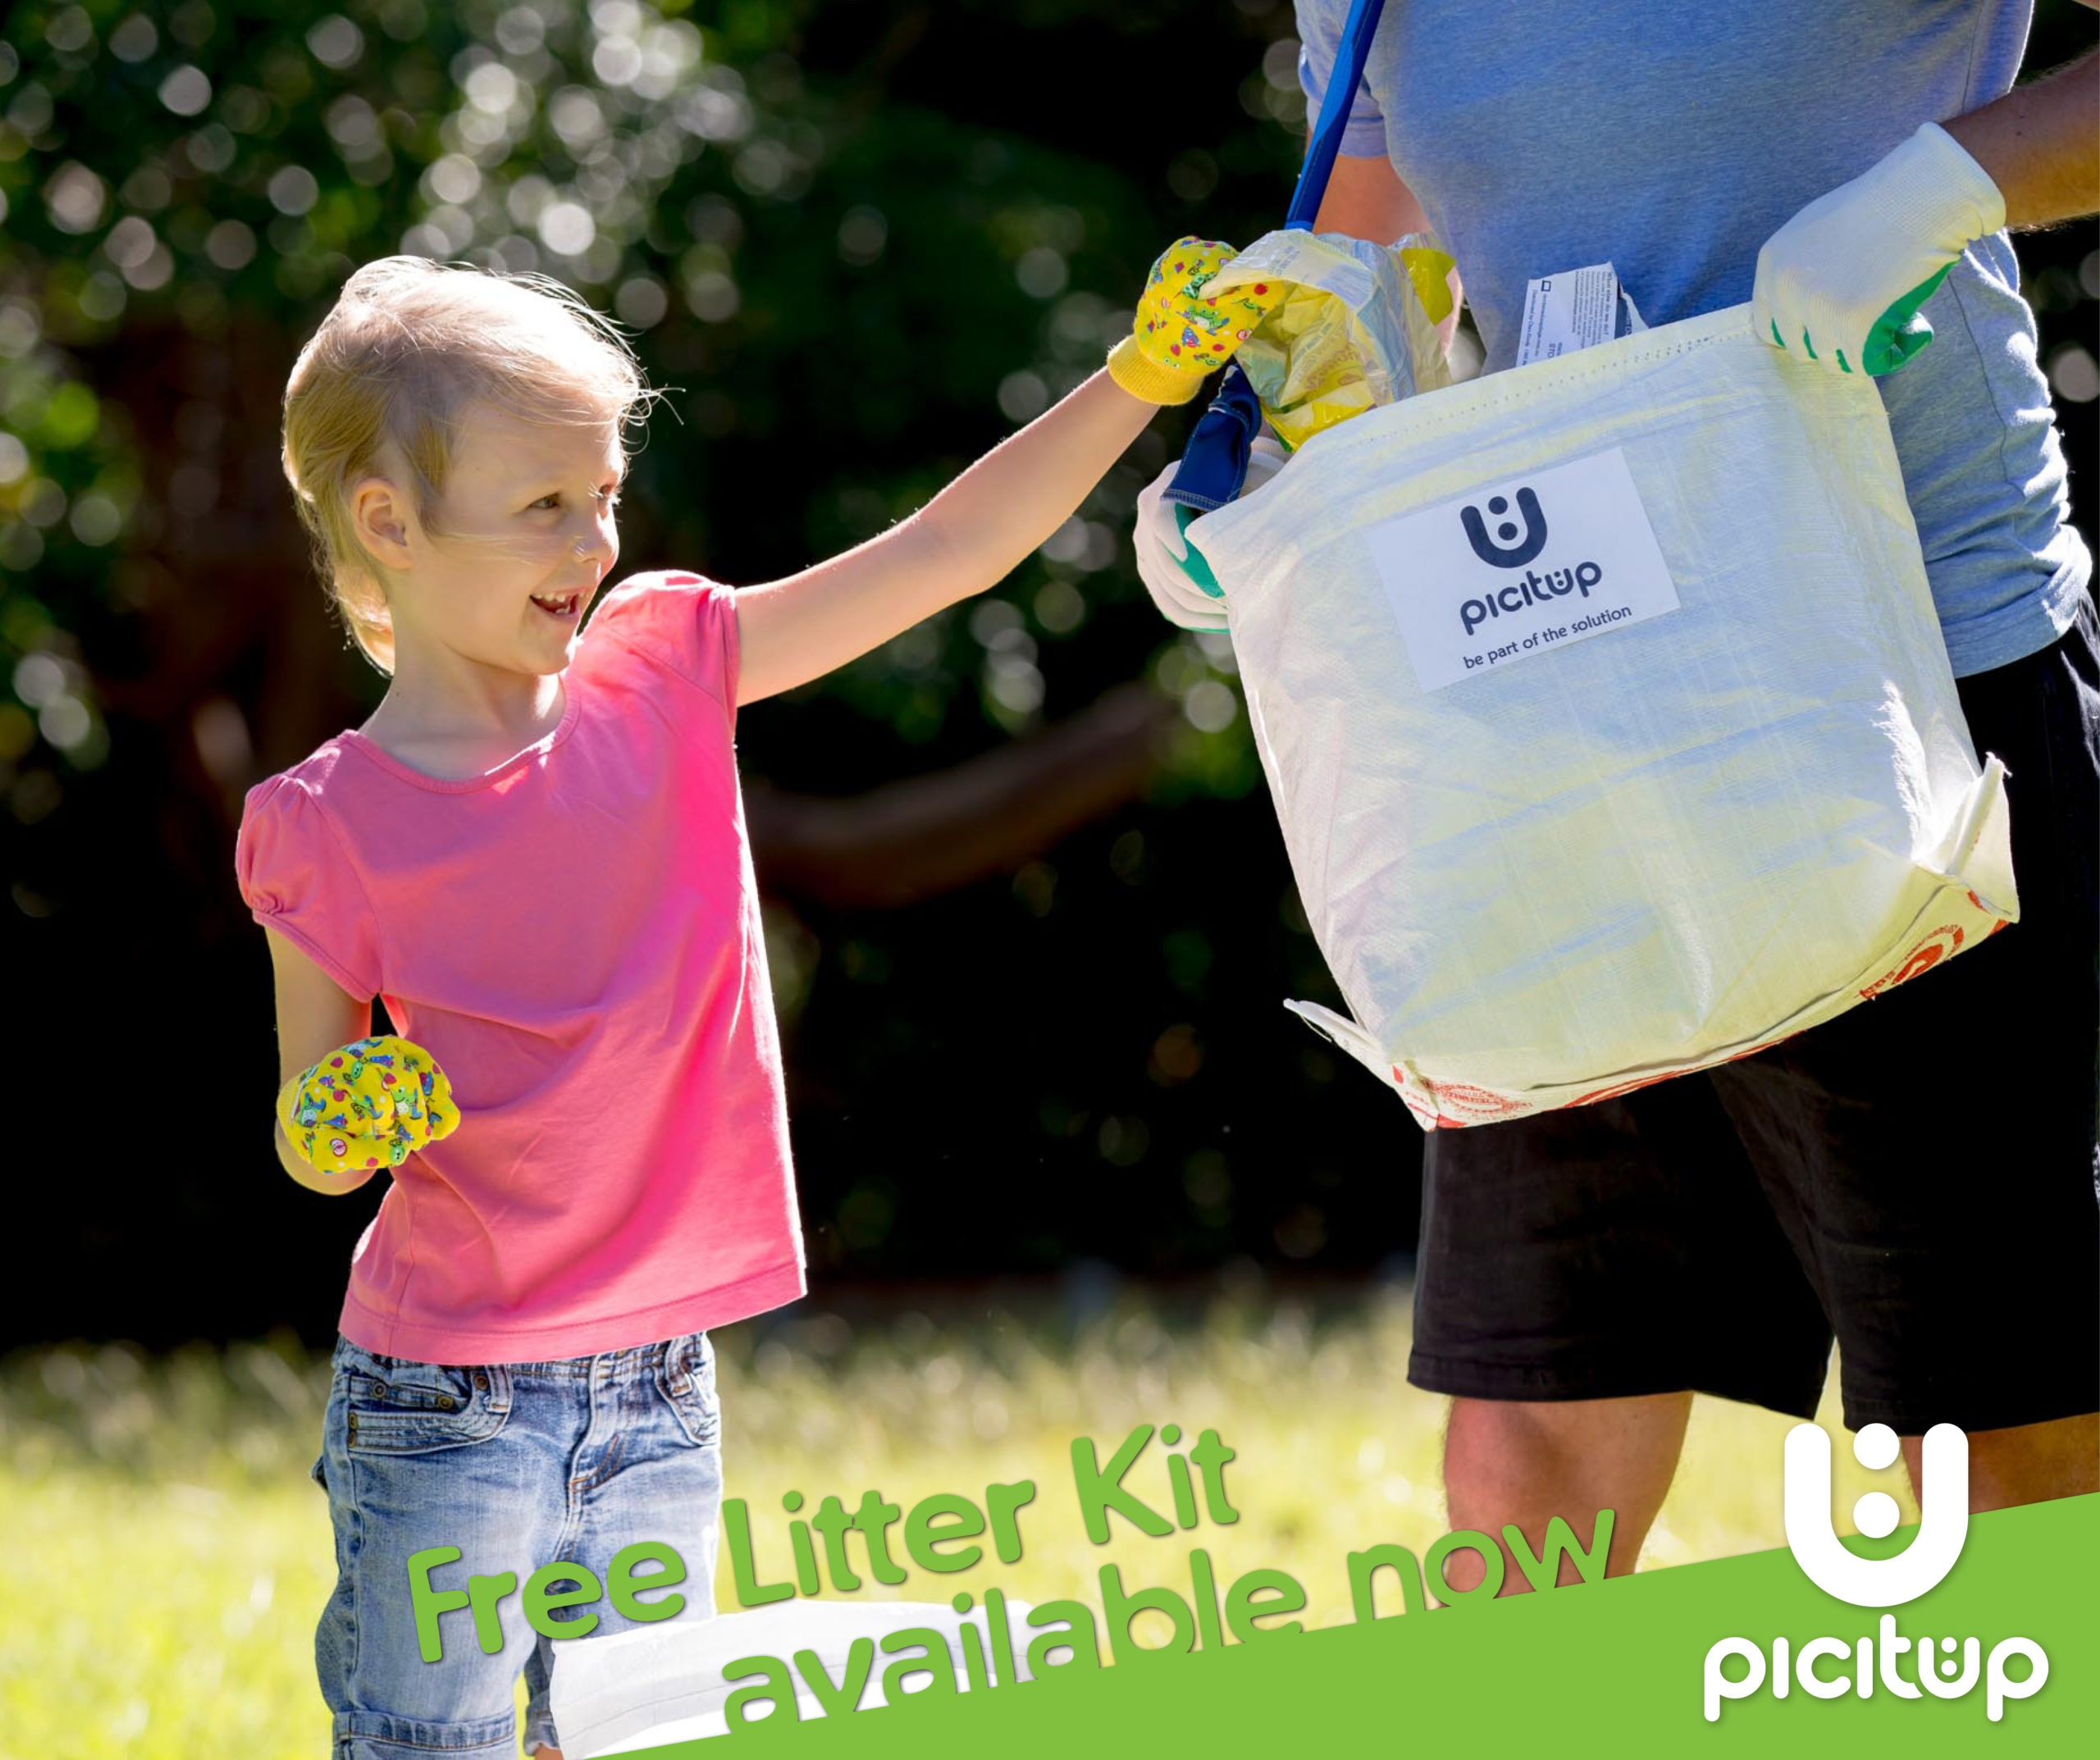 Picitup Social Media Campaign Image of young child picking up rubbish out in the community